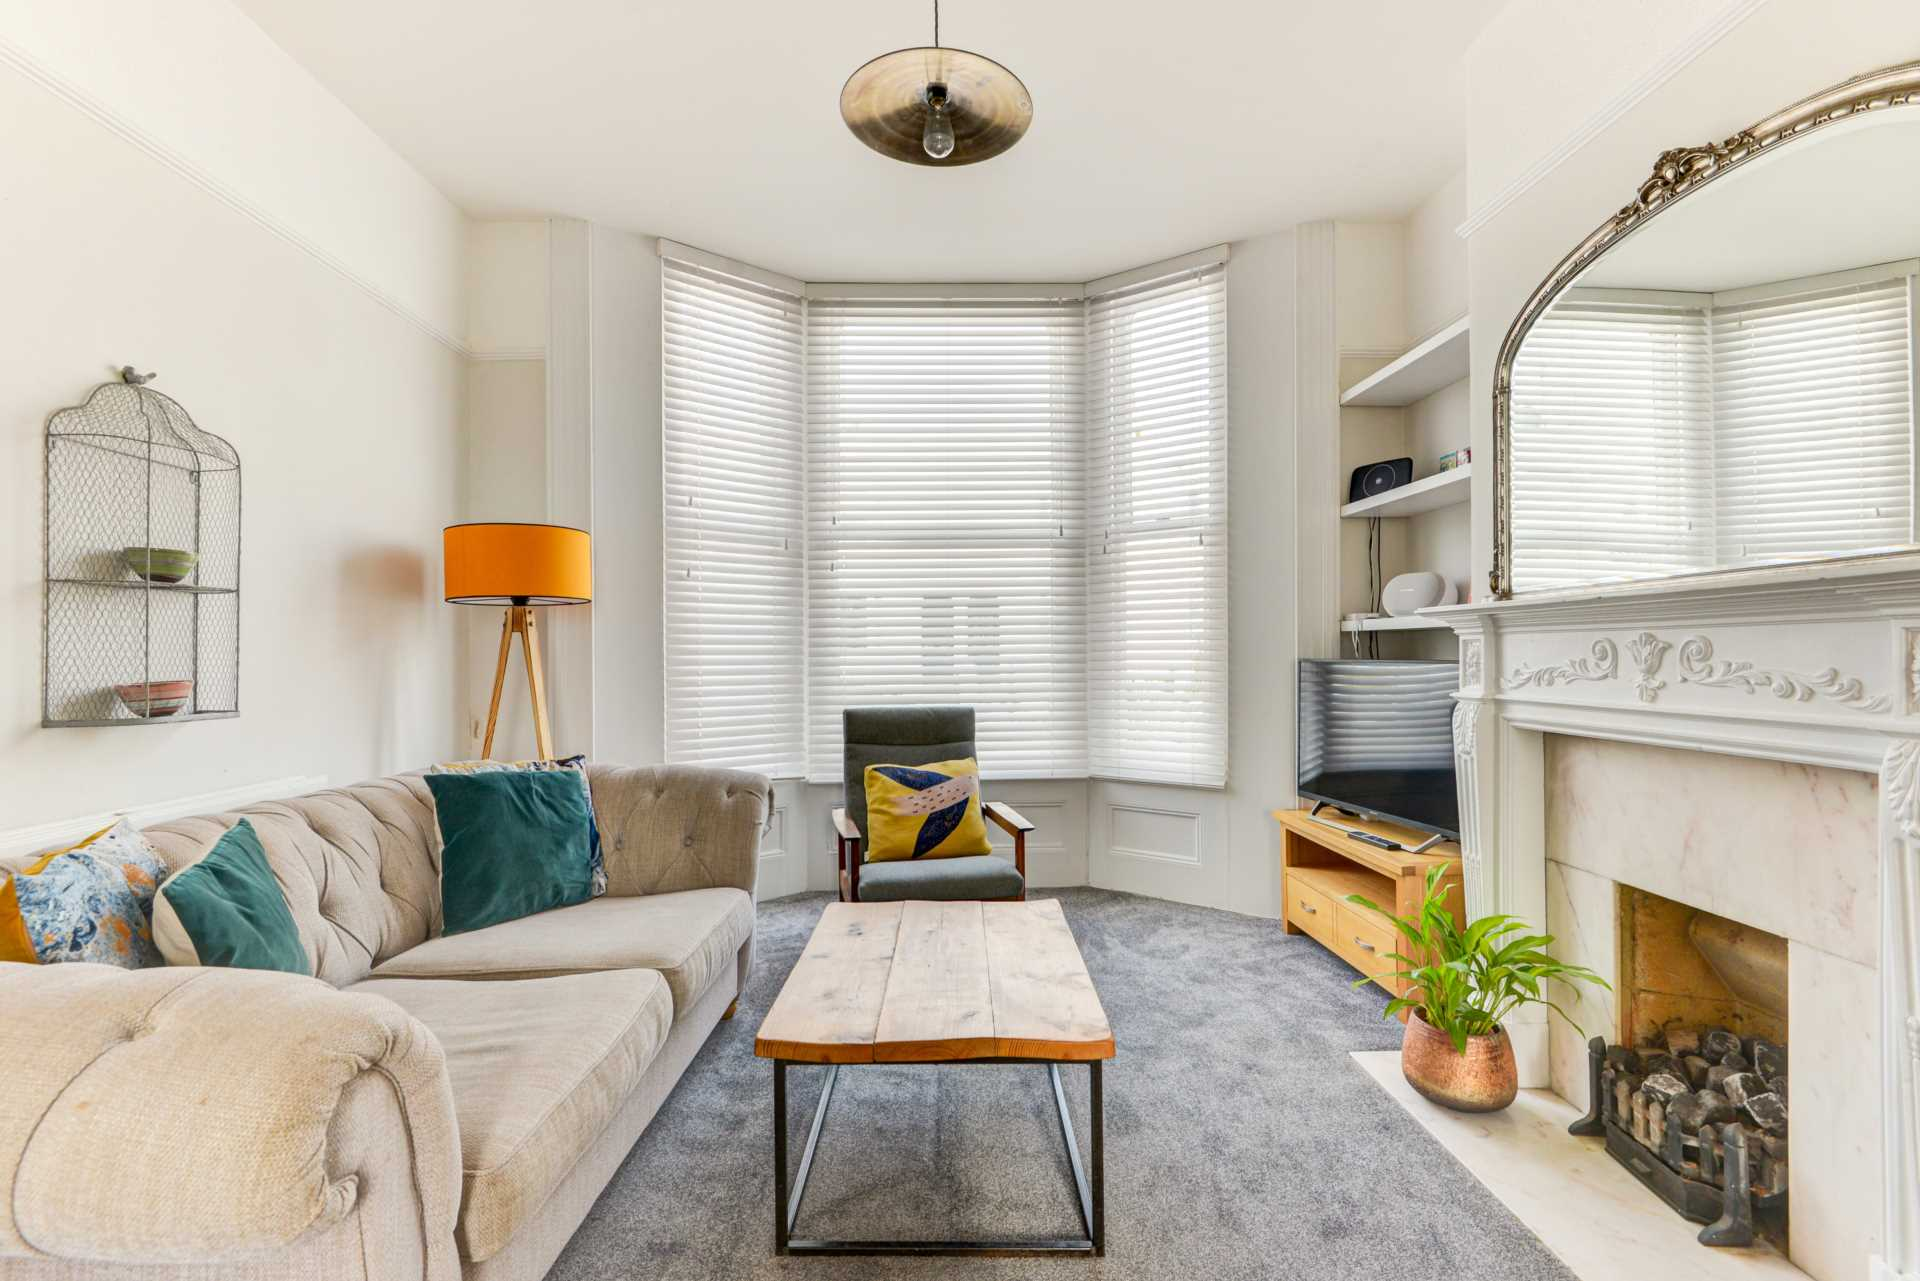 2 bed Maisonette for rent in Hove. From Westbeach Properties Ltd